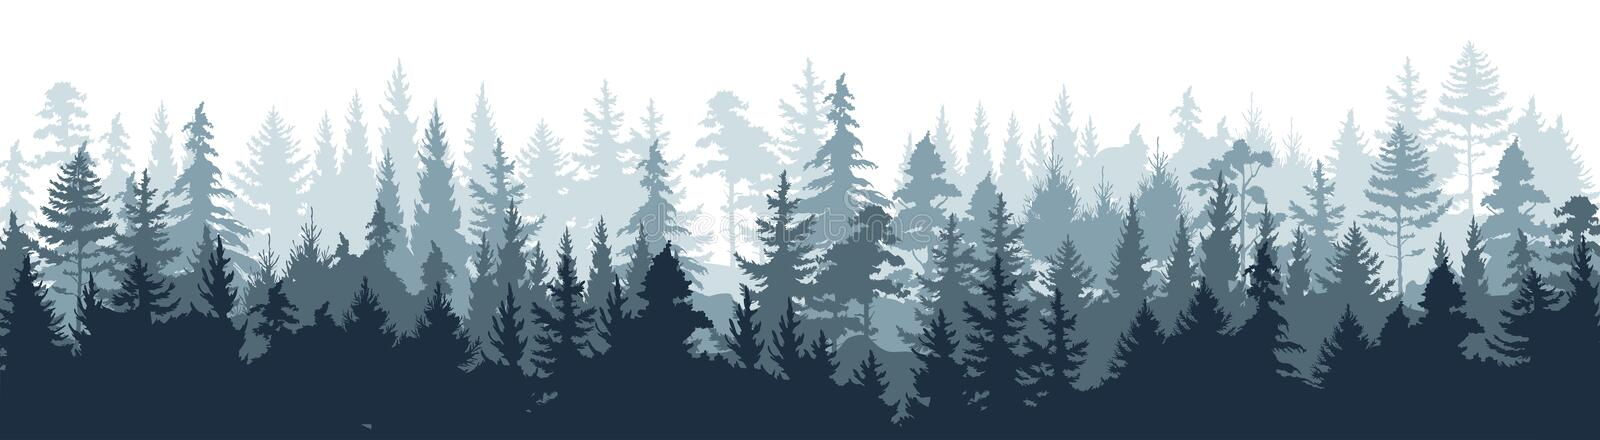 Pine forest. Silhouette wood tree background, wild nature woodland landscape. Vector foggy misty scene royalty free illustration